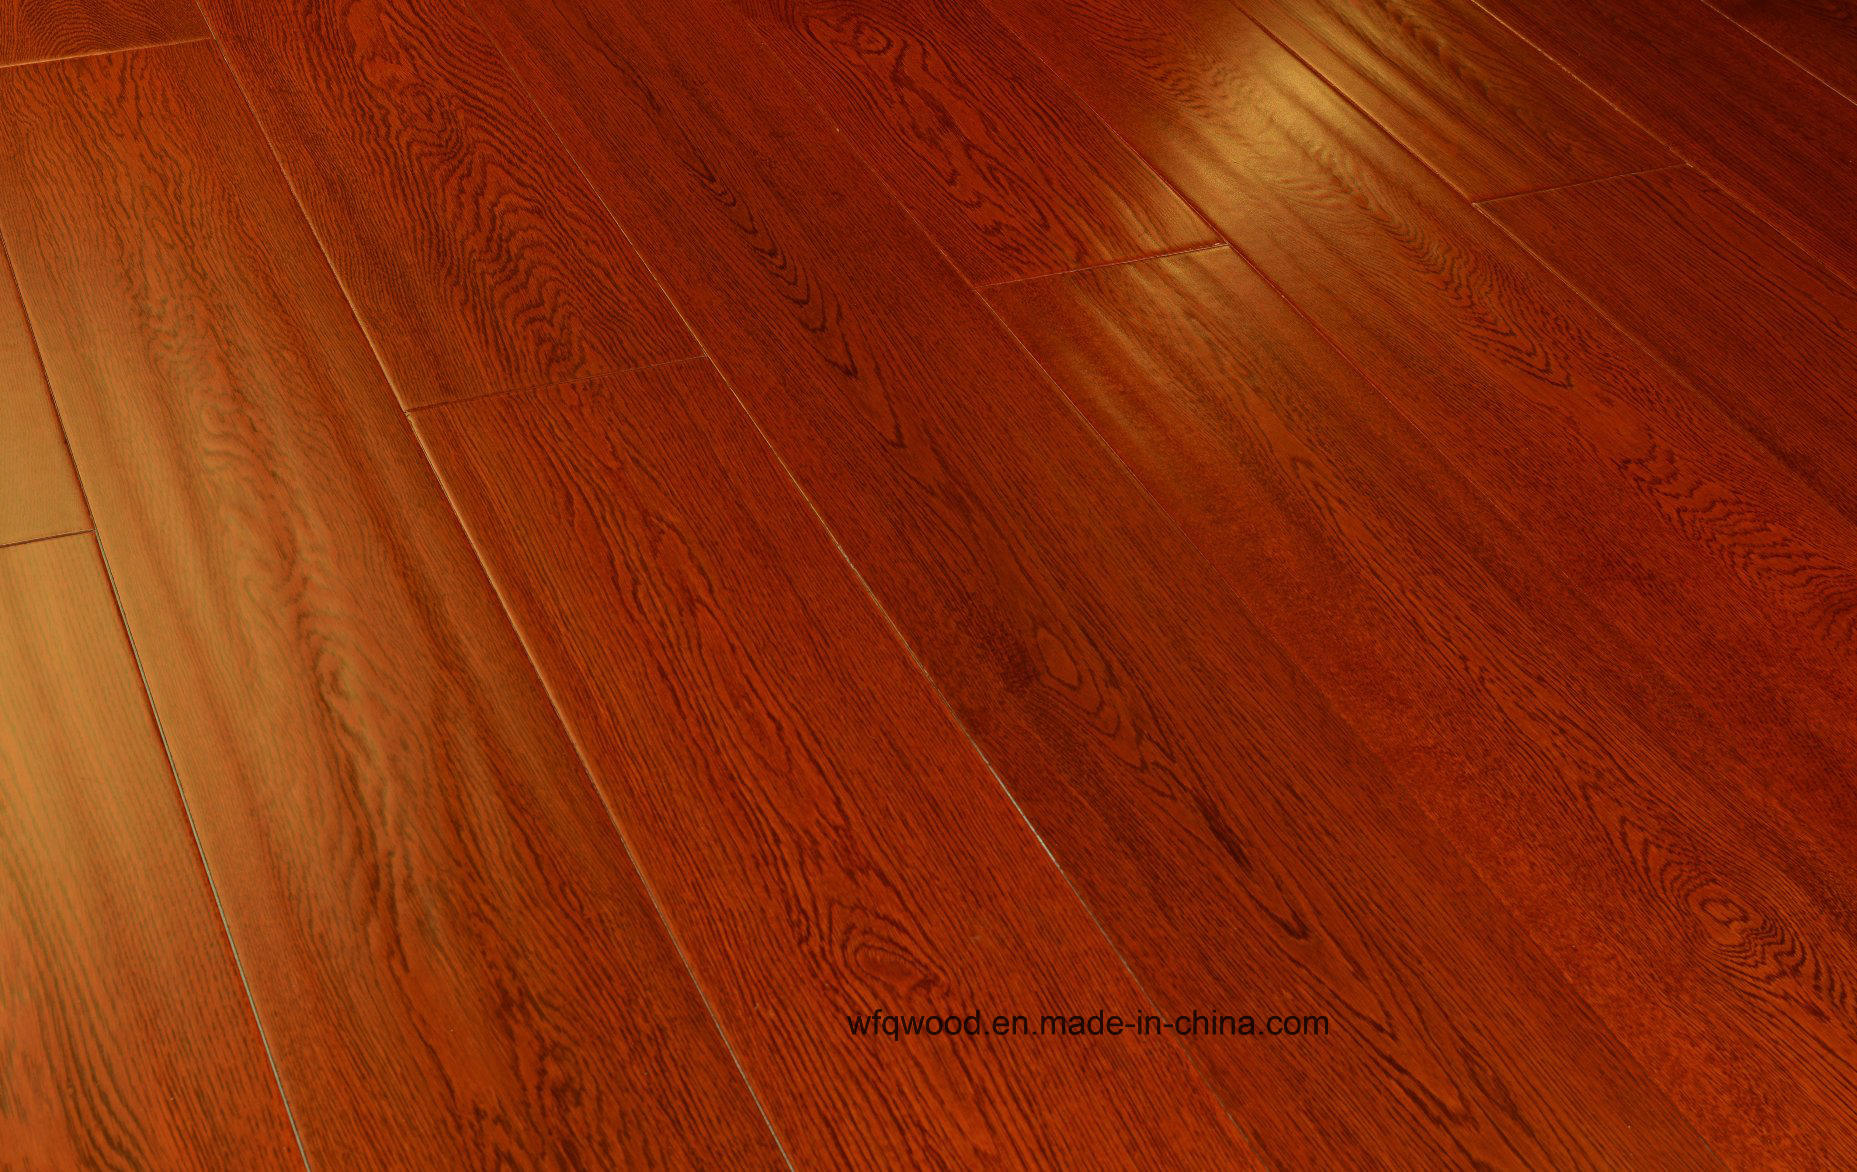 903 Oak Antique Wood Flooring